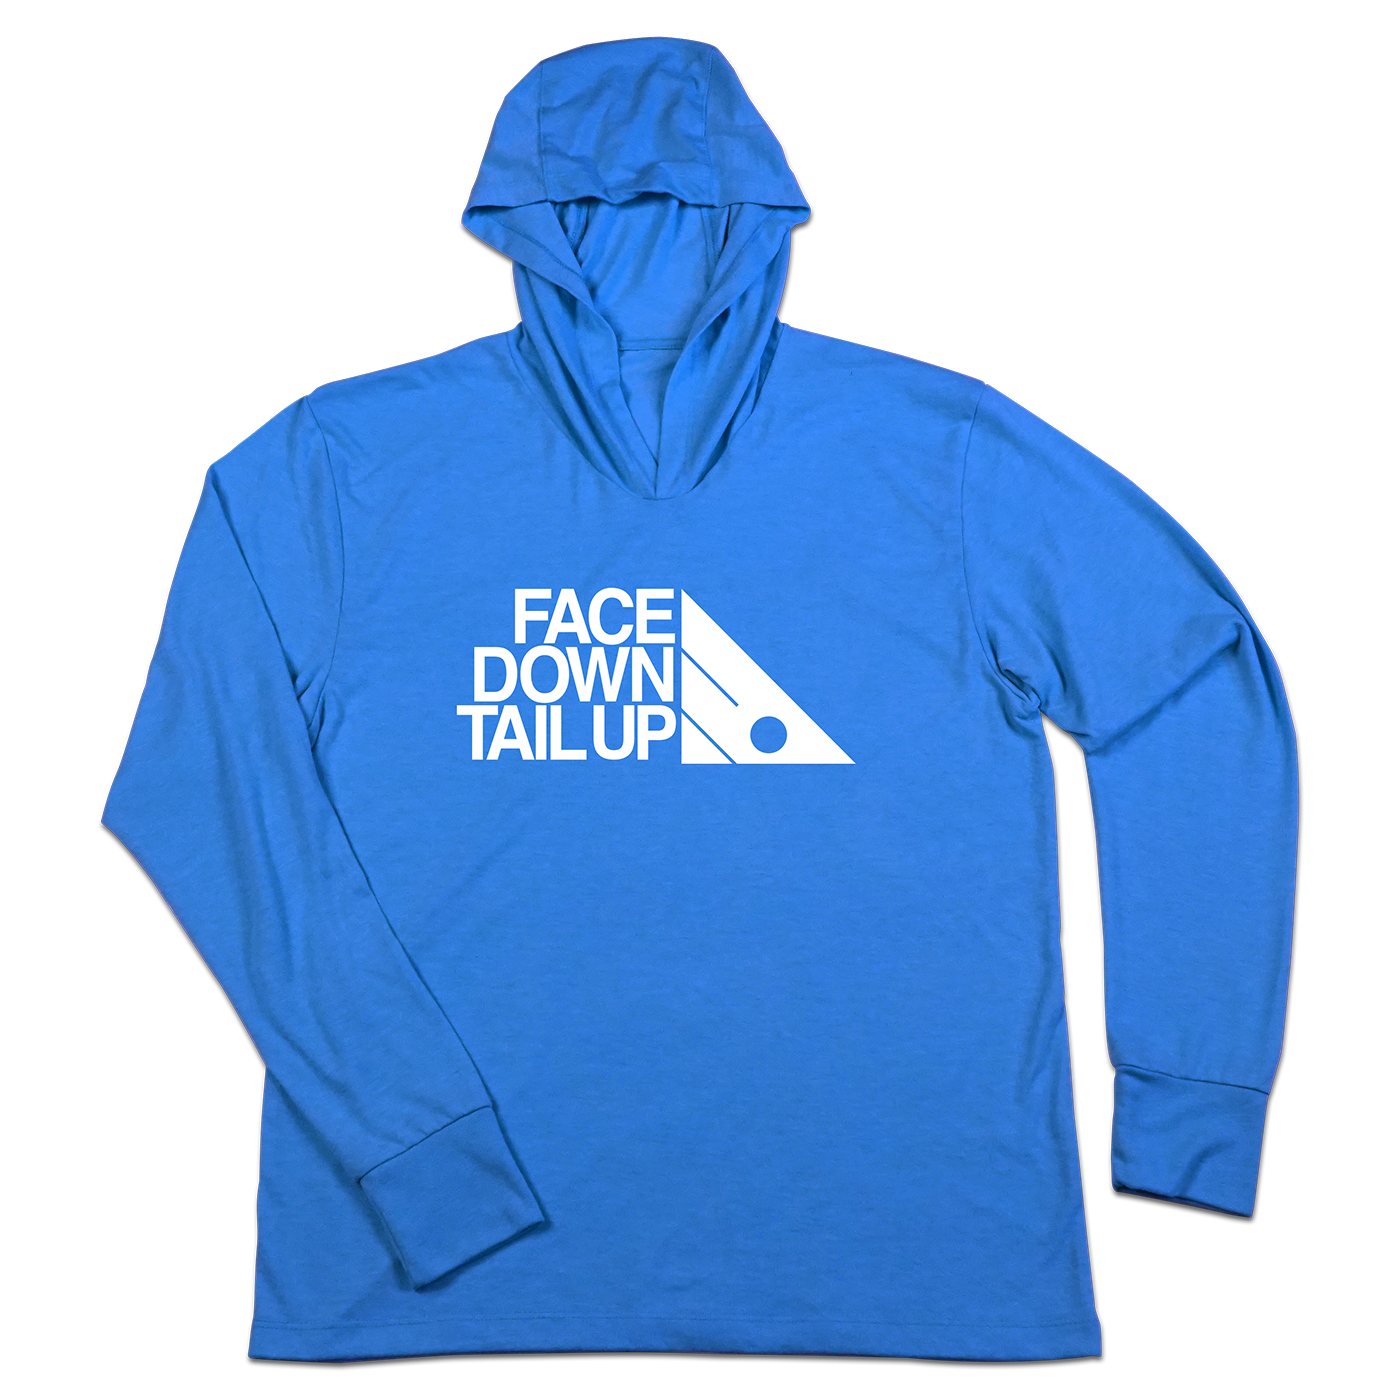 #FACEDOWNTAILUP TriBlend Hoodie Shirt